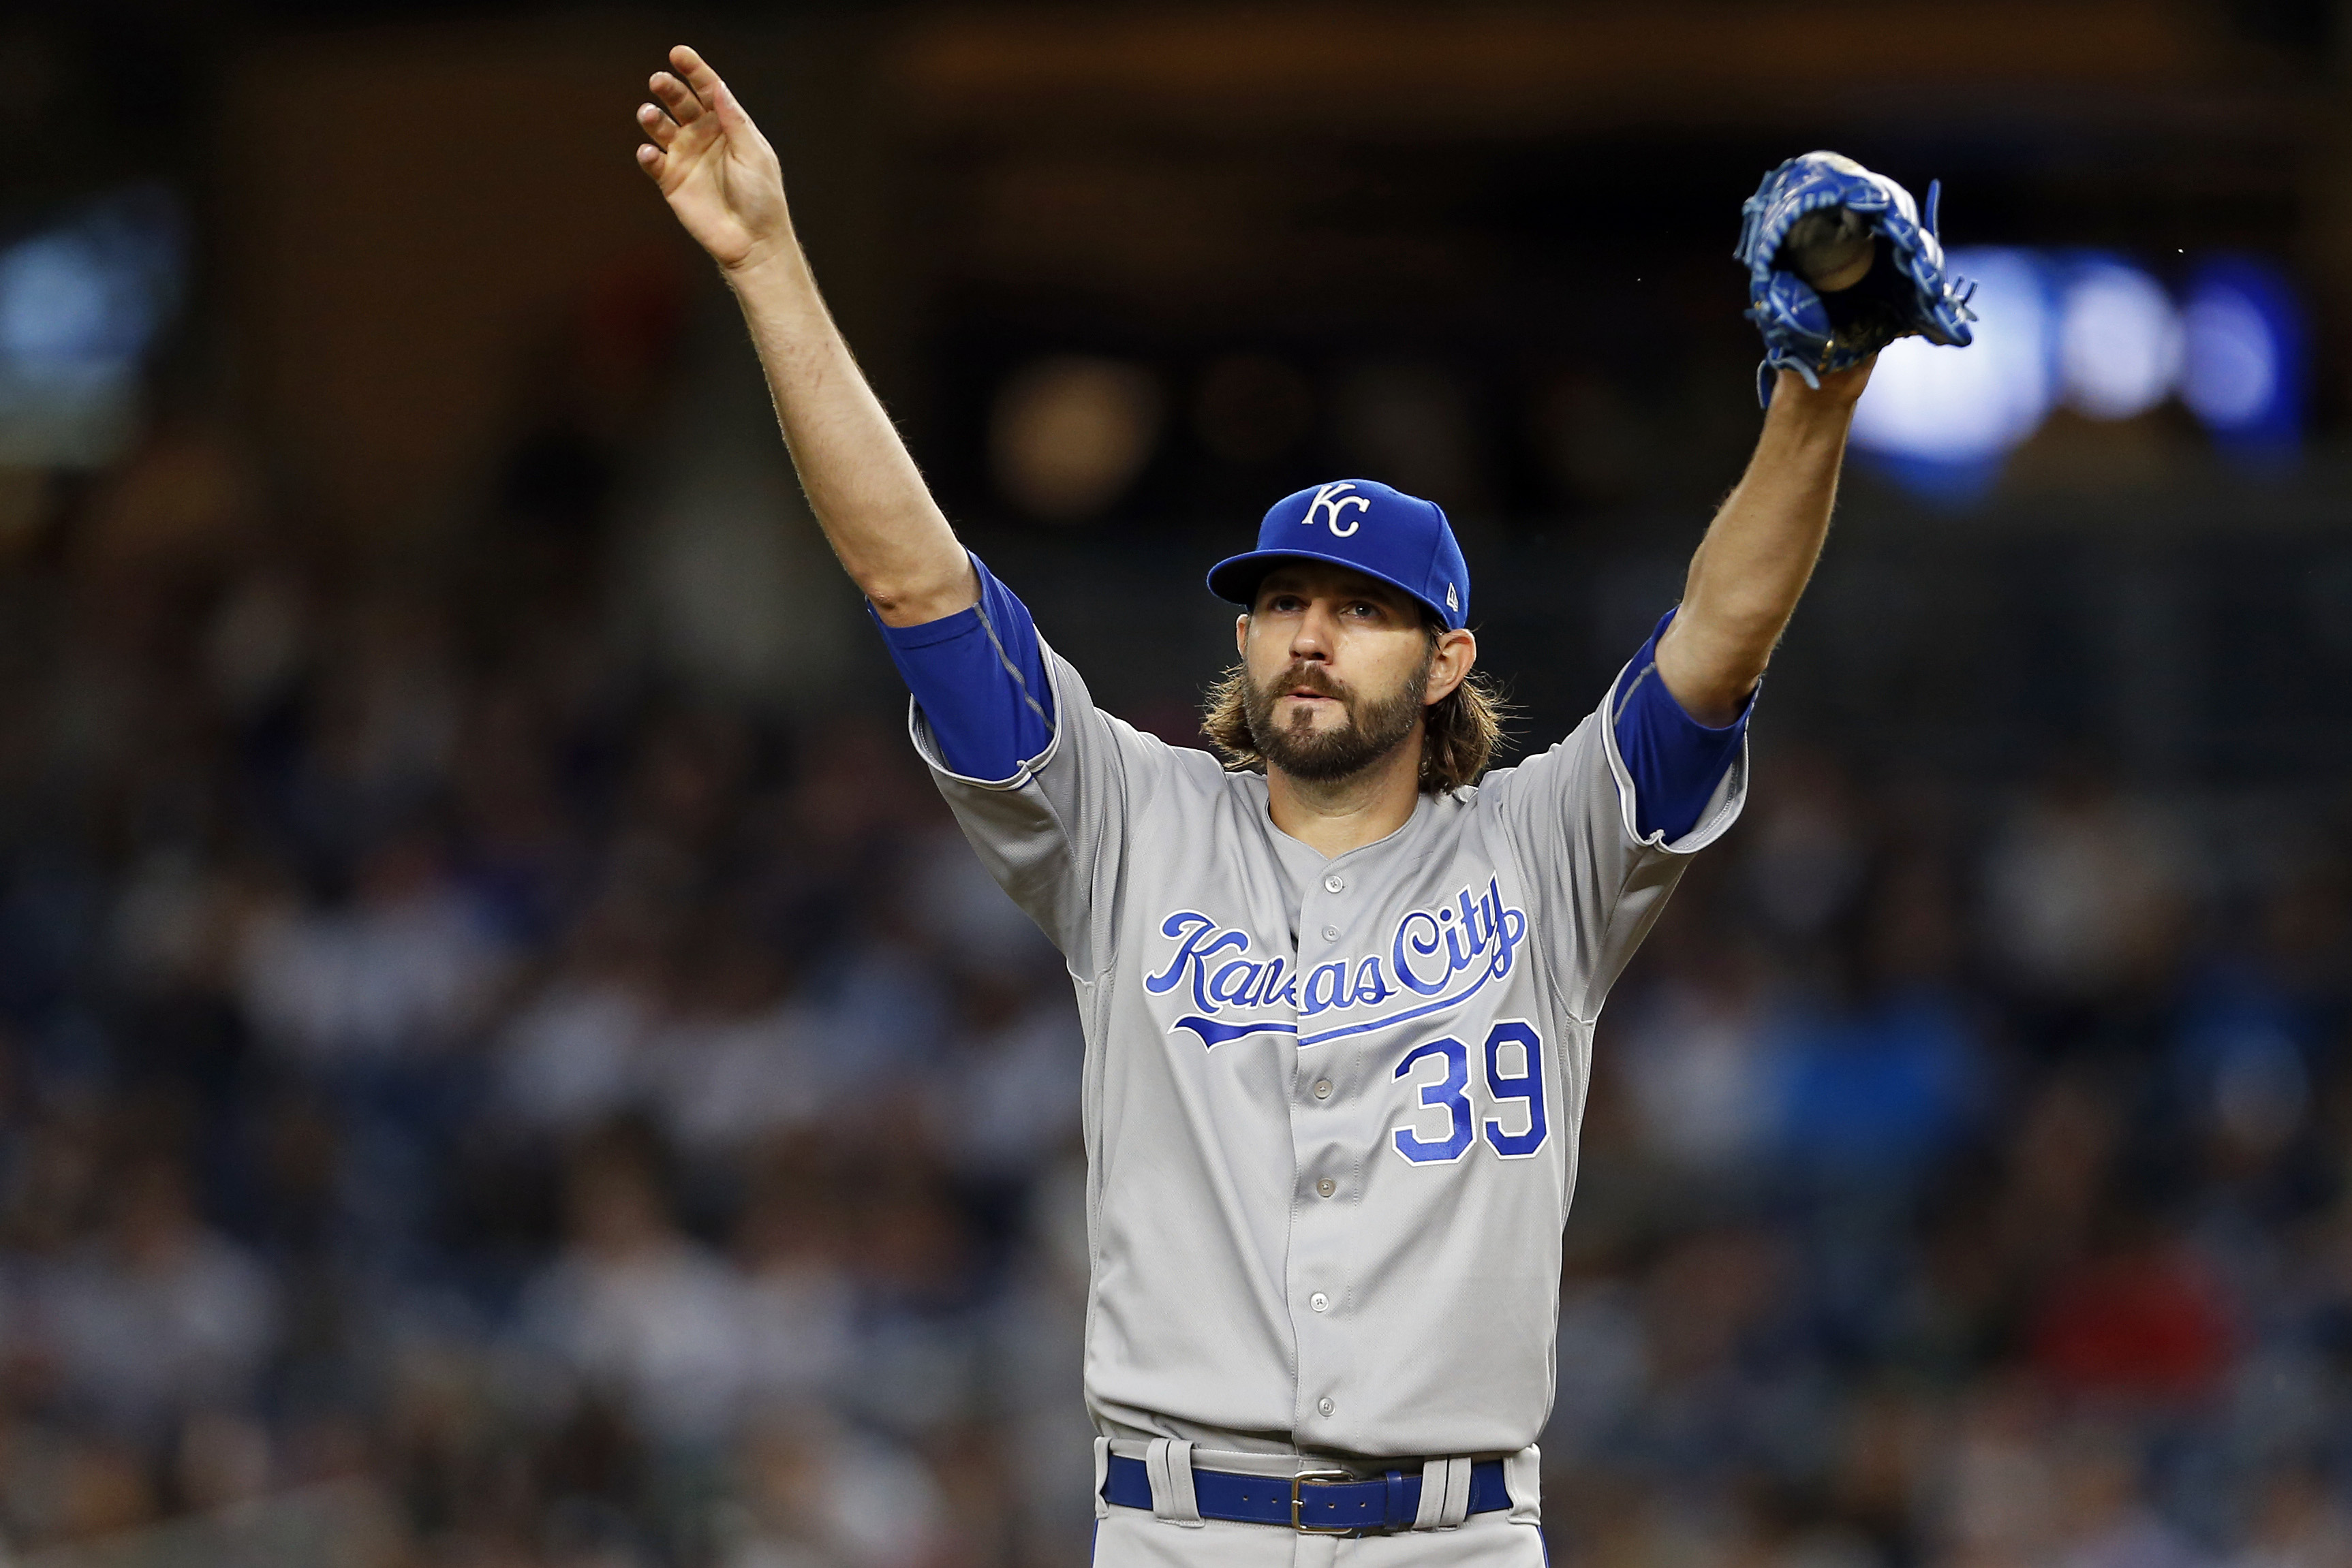 """Vargas pitches Royals past Astros 7-5"""""""